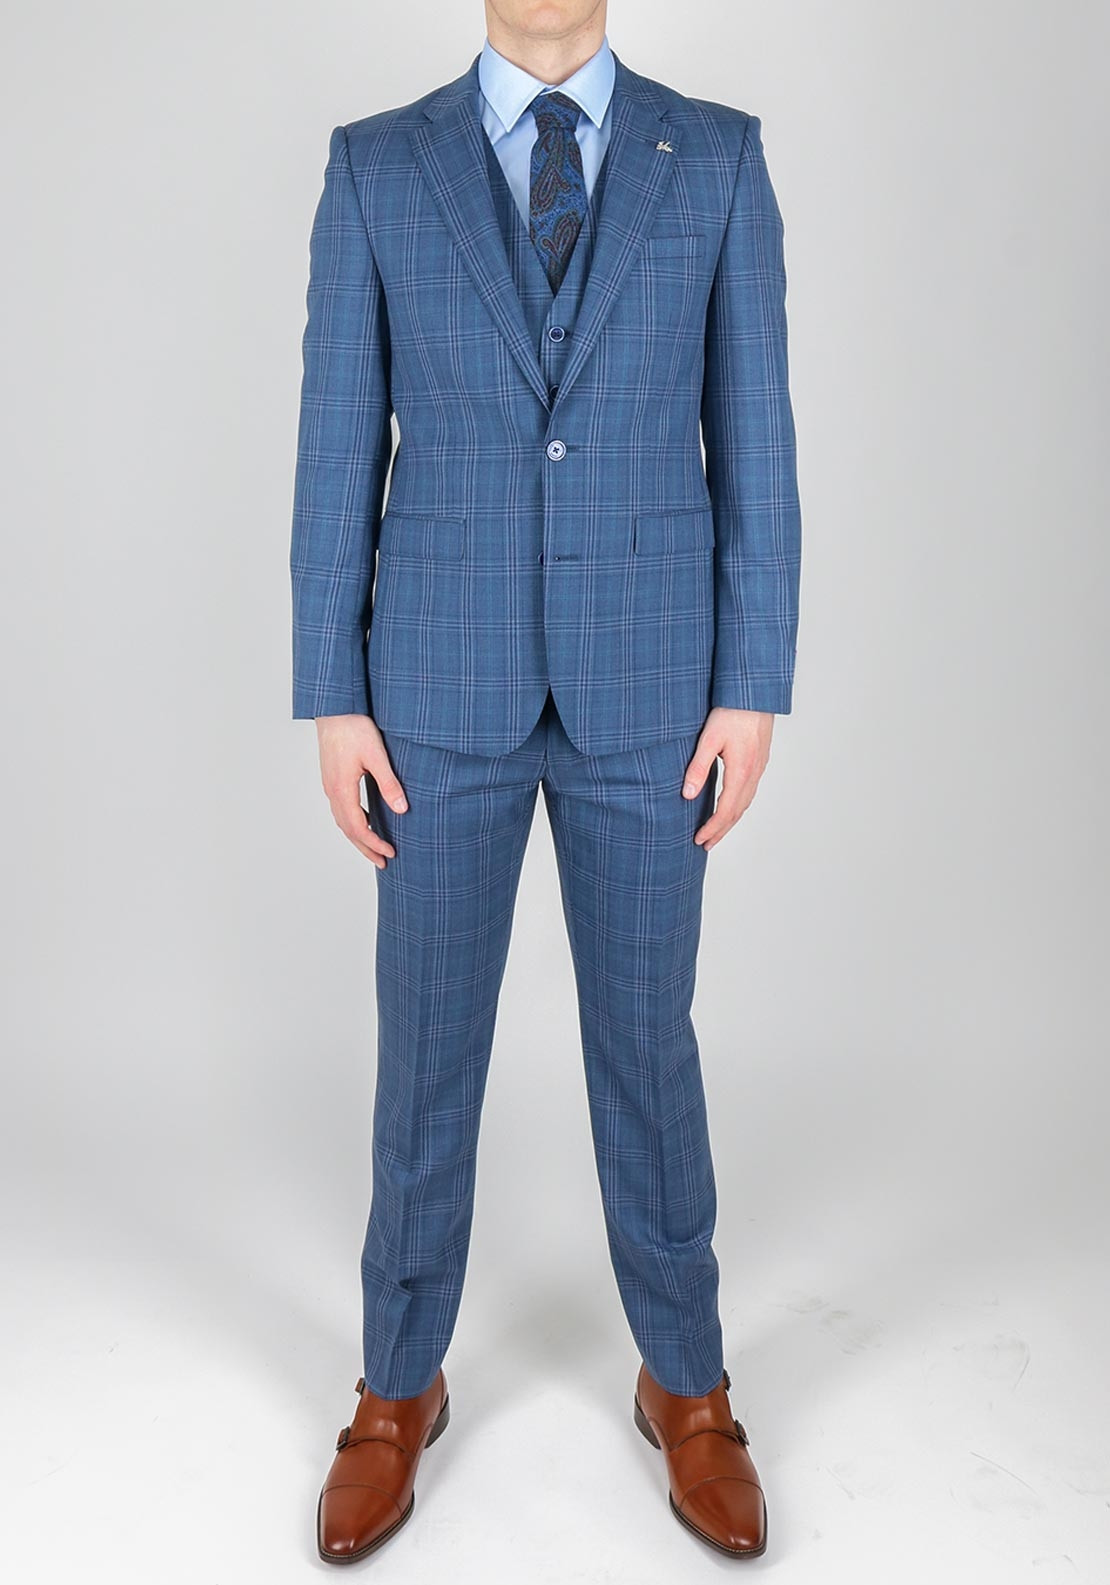 Herbie Frogg Blue Bold Check 3 Piece Suit | McElhinneys